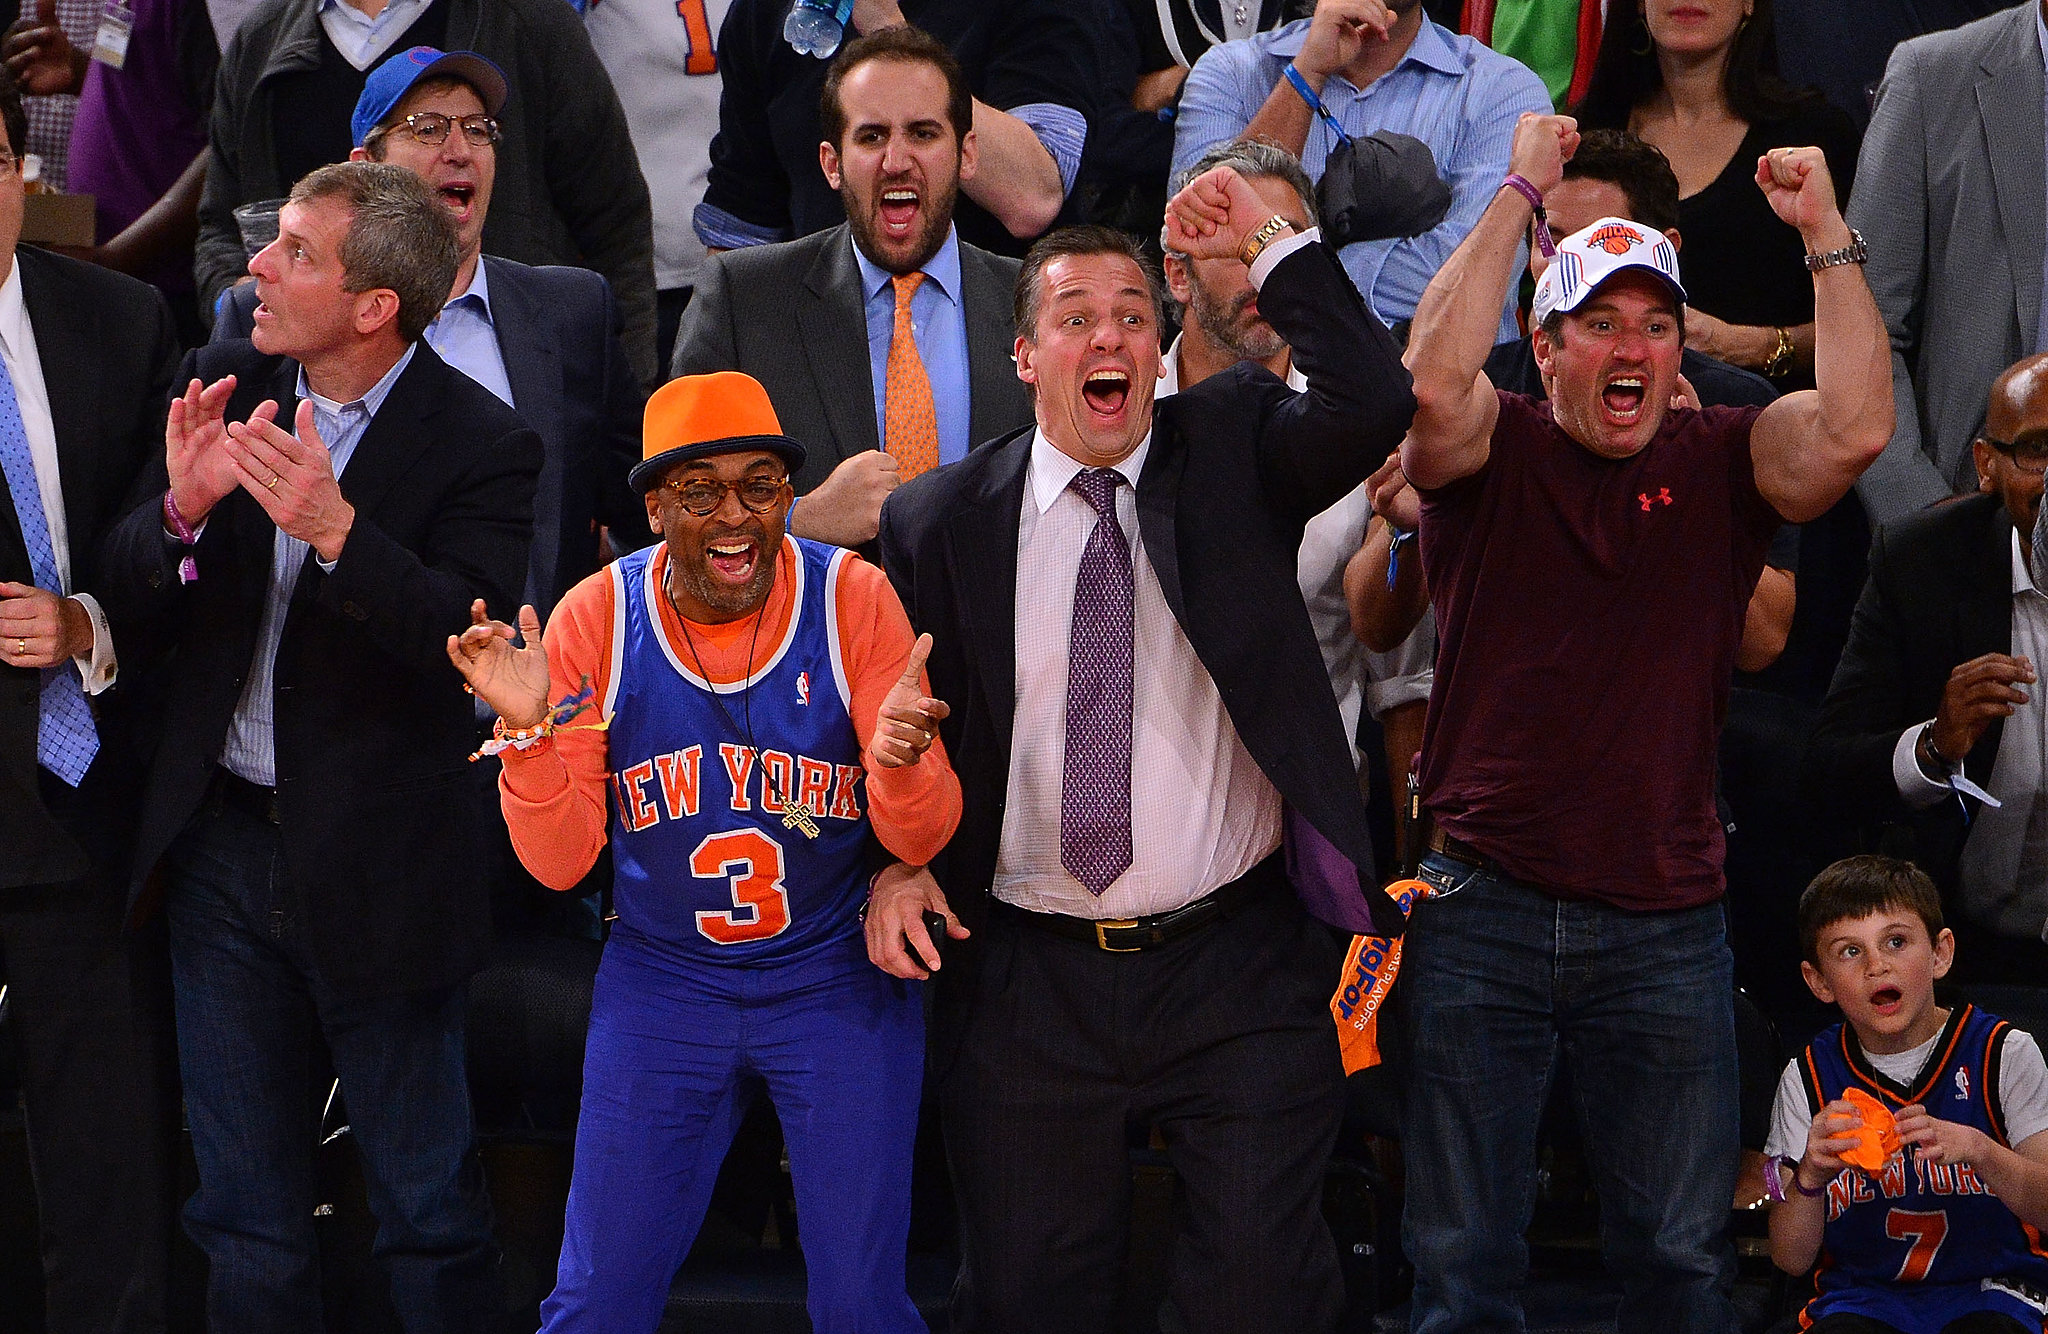 Spike Lee and company could not hold back their enthusiasm during a NY Knicks playoff game in May.